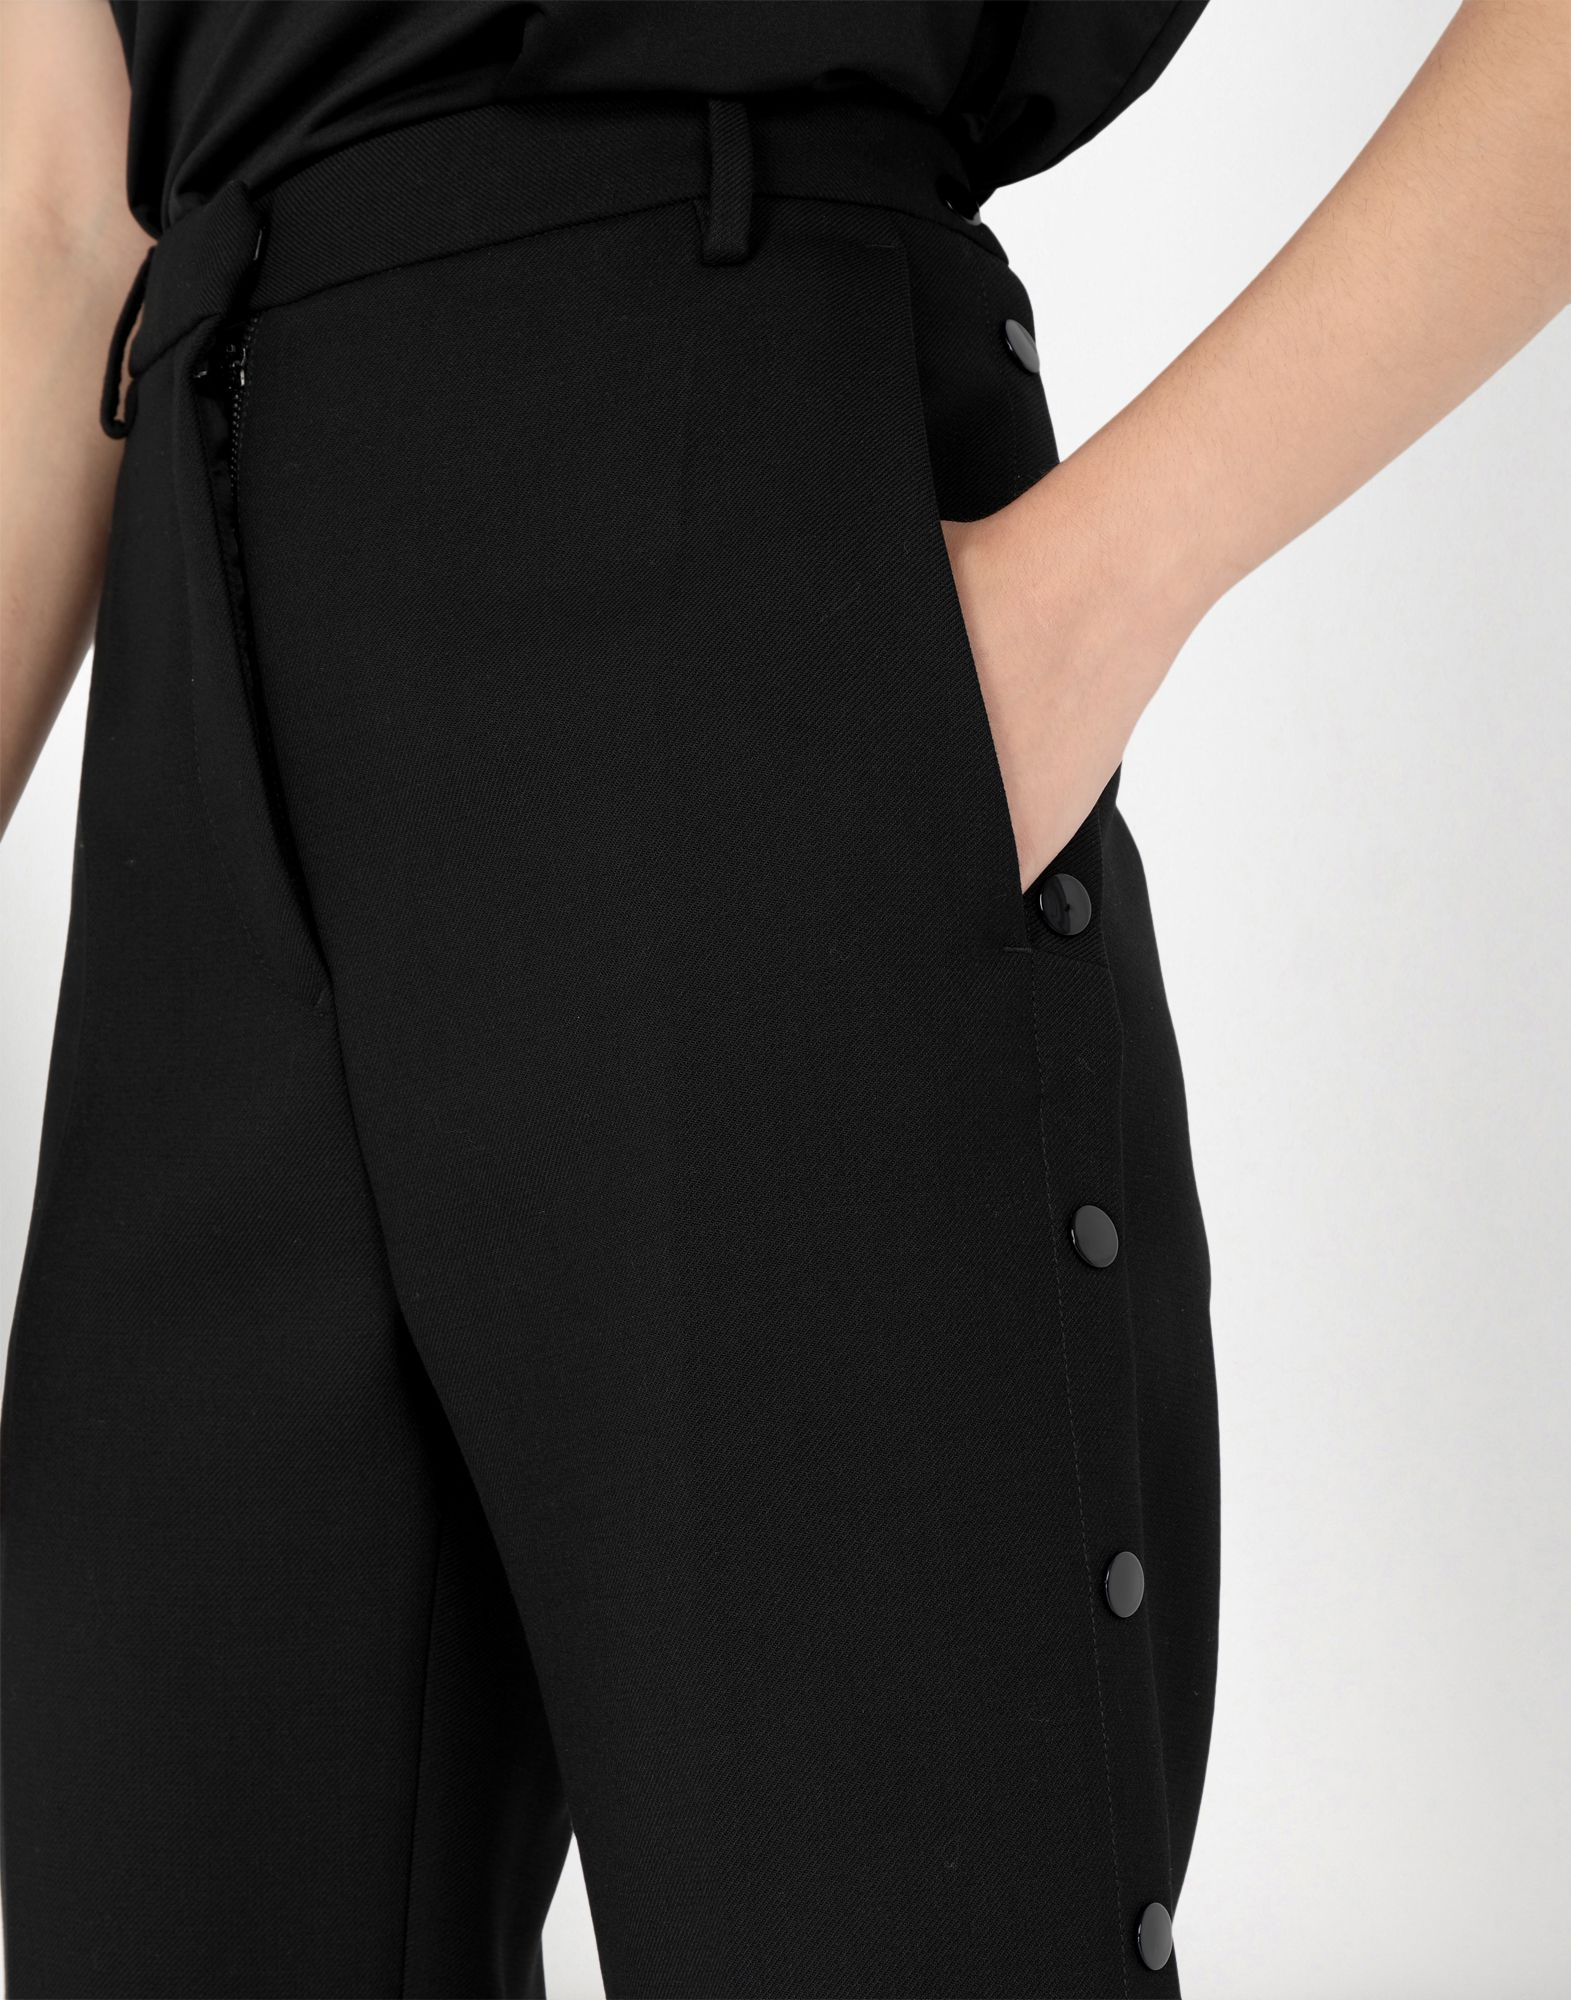 MM6 MAISON MARGIELA High waisted trousers with side buttons Casual pants Woman e